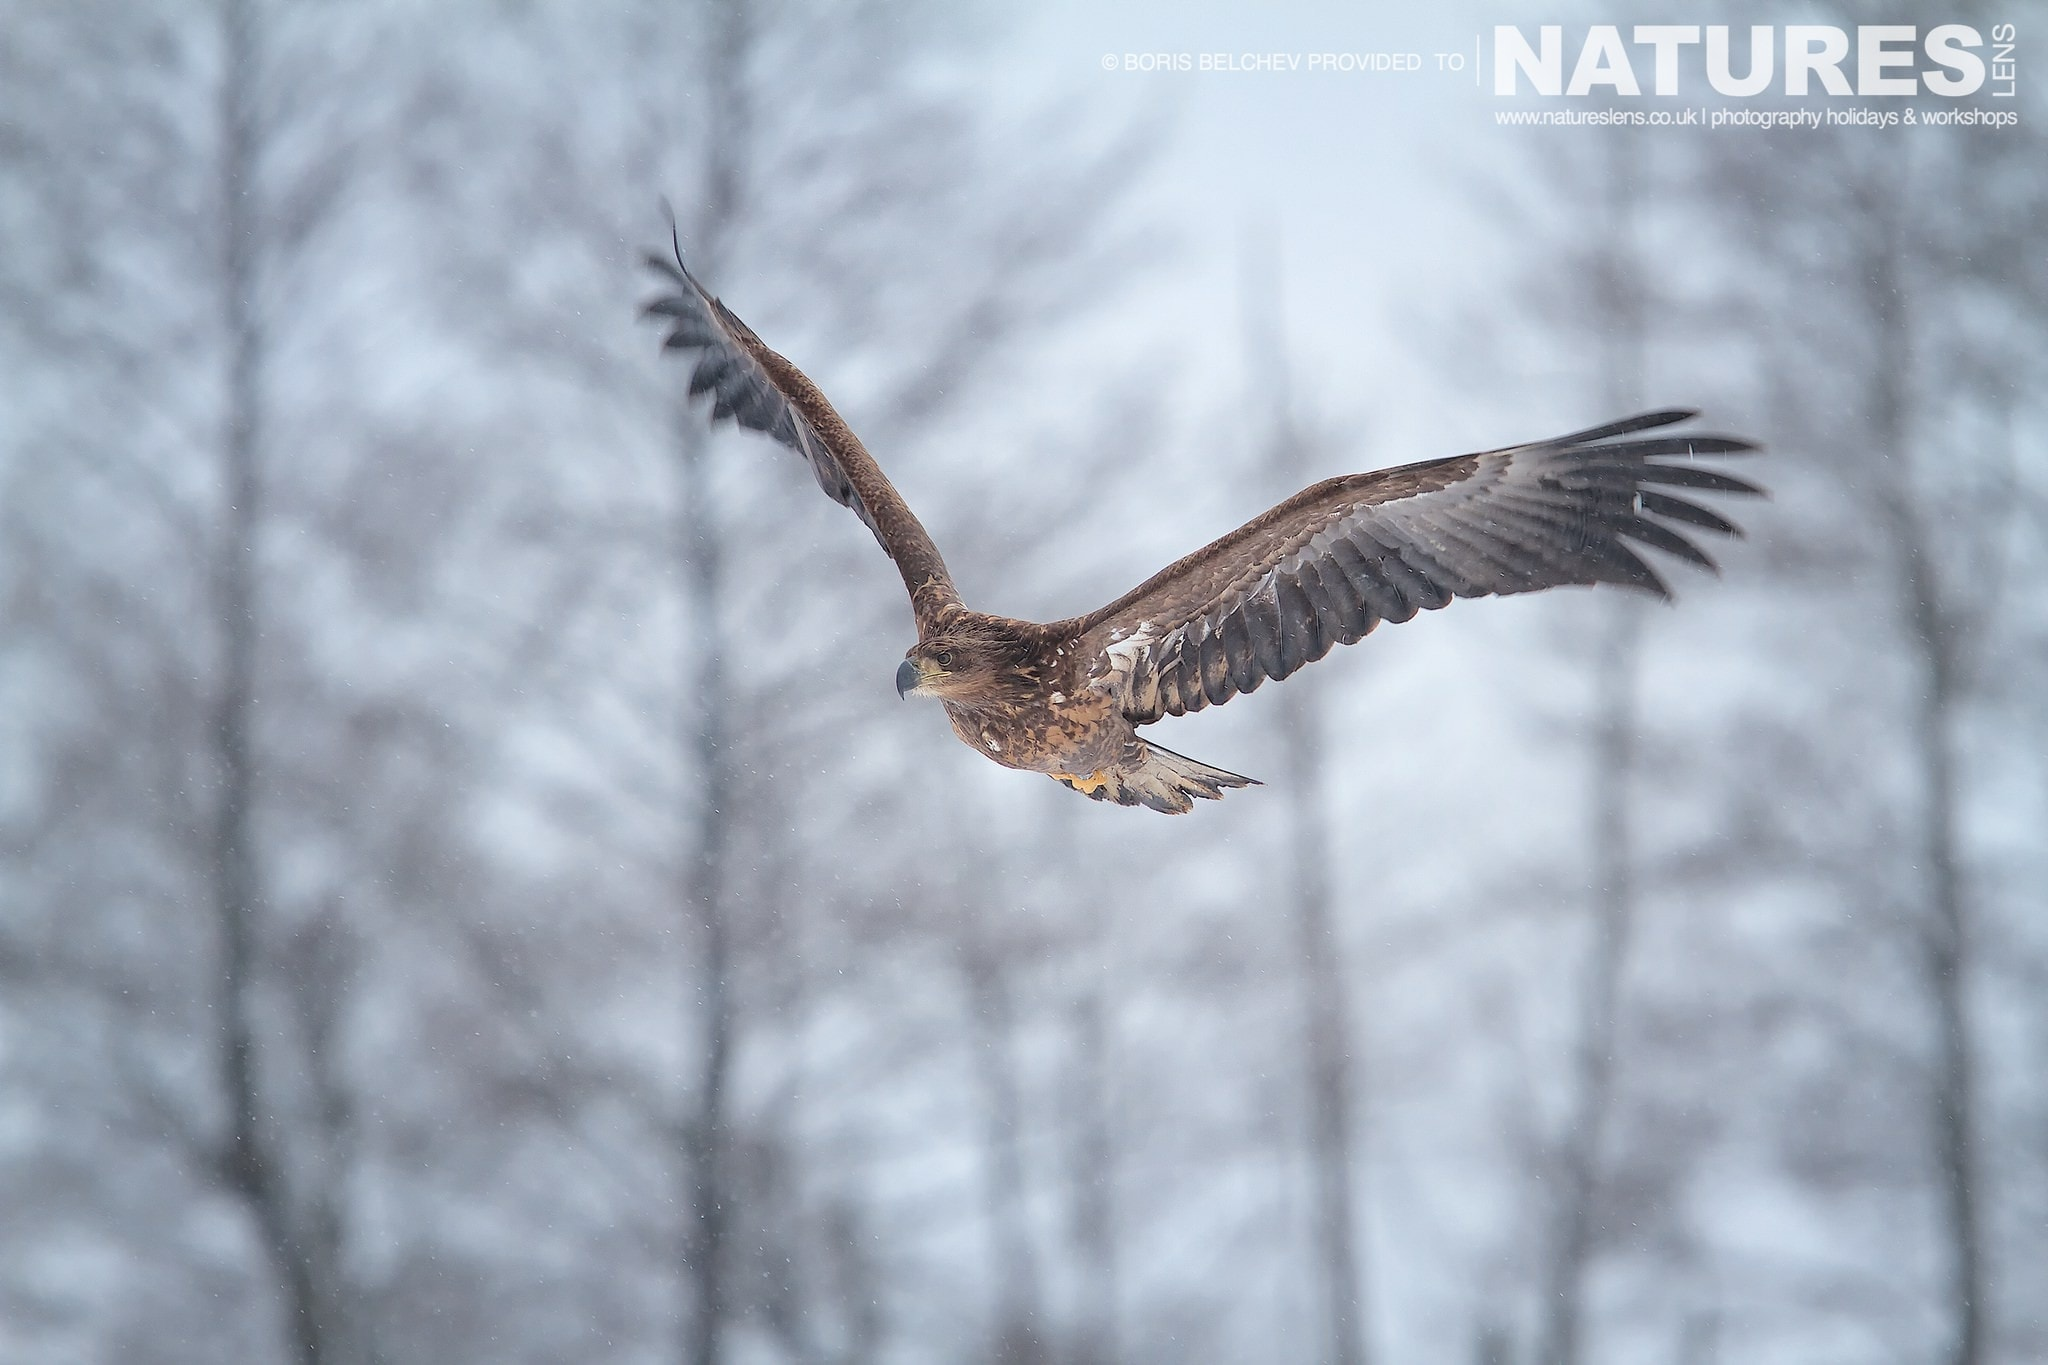 One of the White-tailed Sea Eagles soars aboves the pastures of the Nemunas Delta - photographed at the hides & locations used for the NaturesLens White-tailed Sea Eagles of Lithuania Photography Holiday